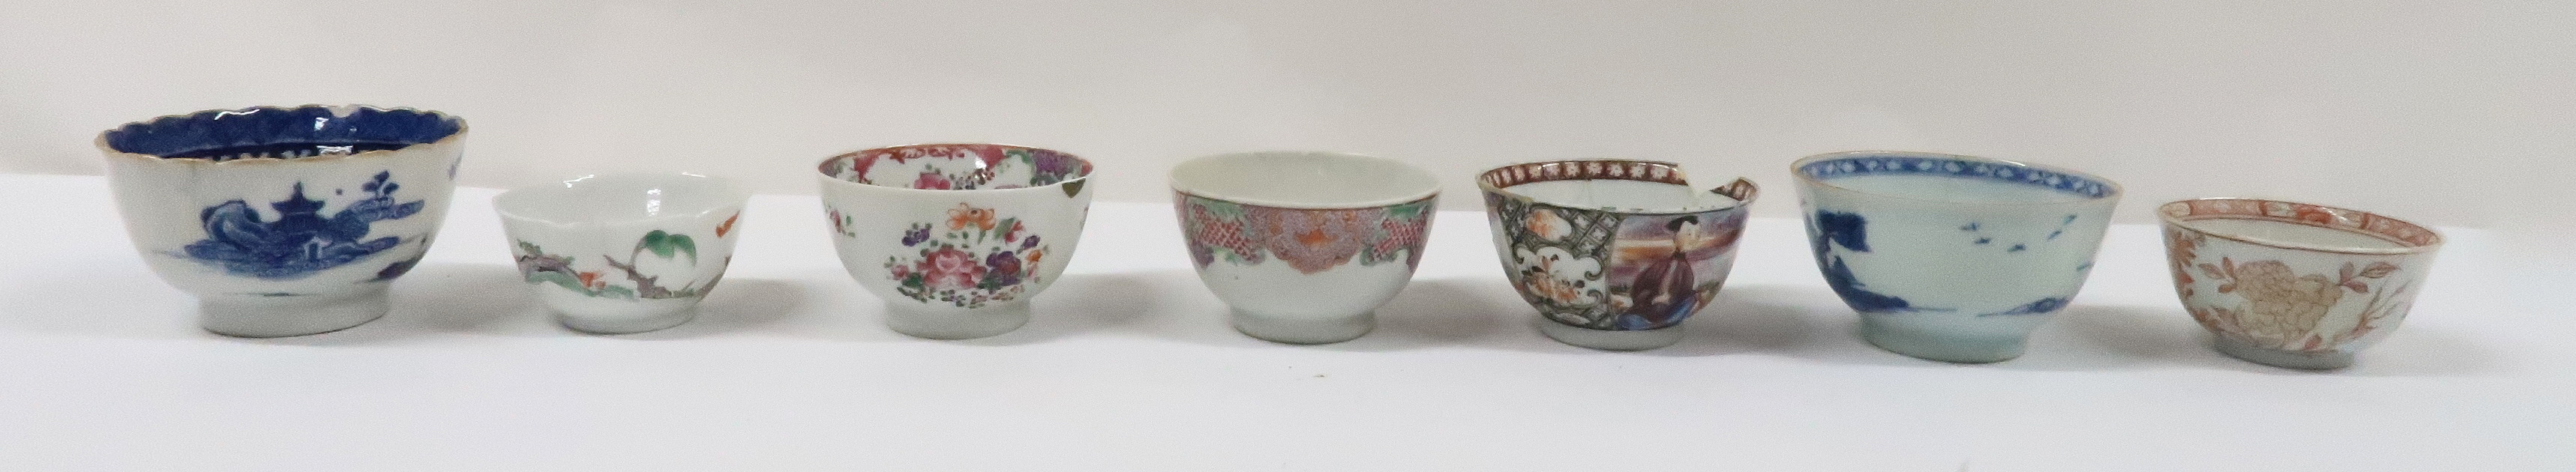 A COLLECTION OF CHINESE EXPORT TEAWARES and others including famille rose, Chien Lung, blue and - Image 7 of 22